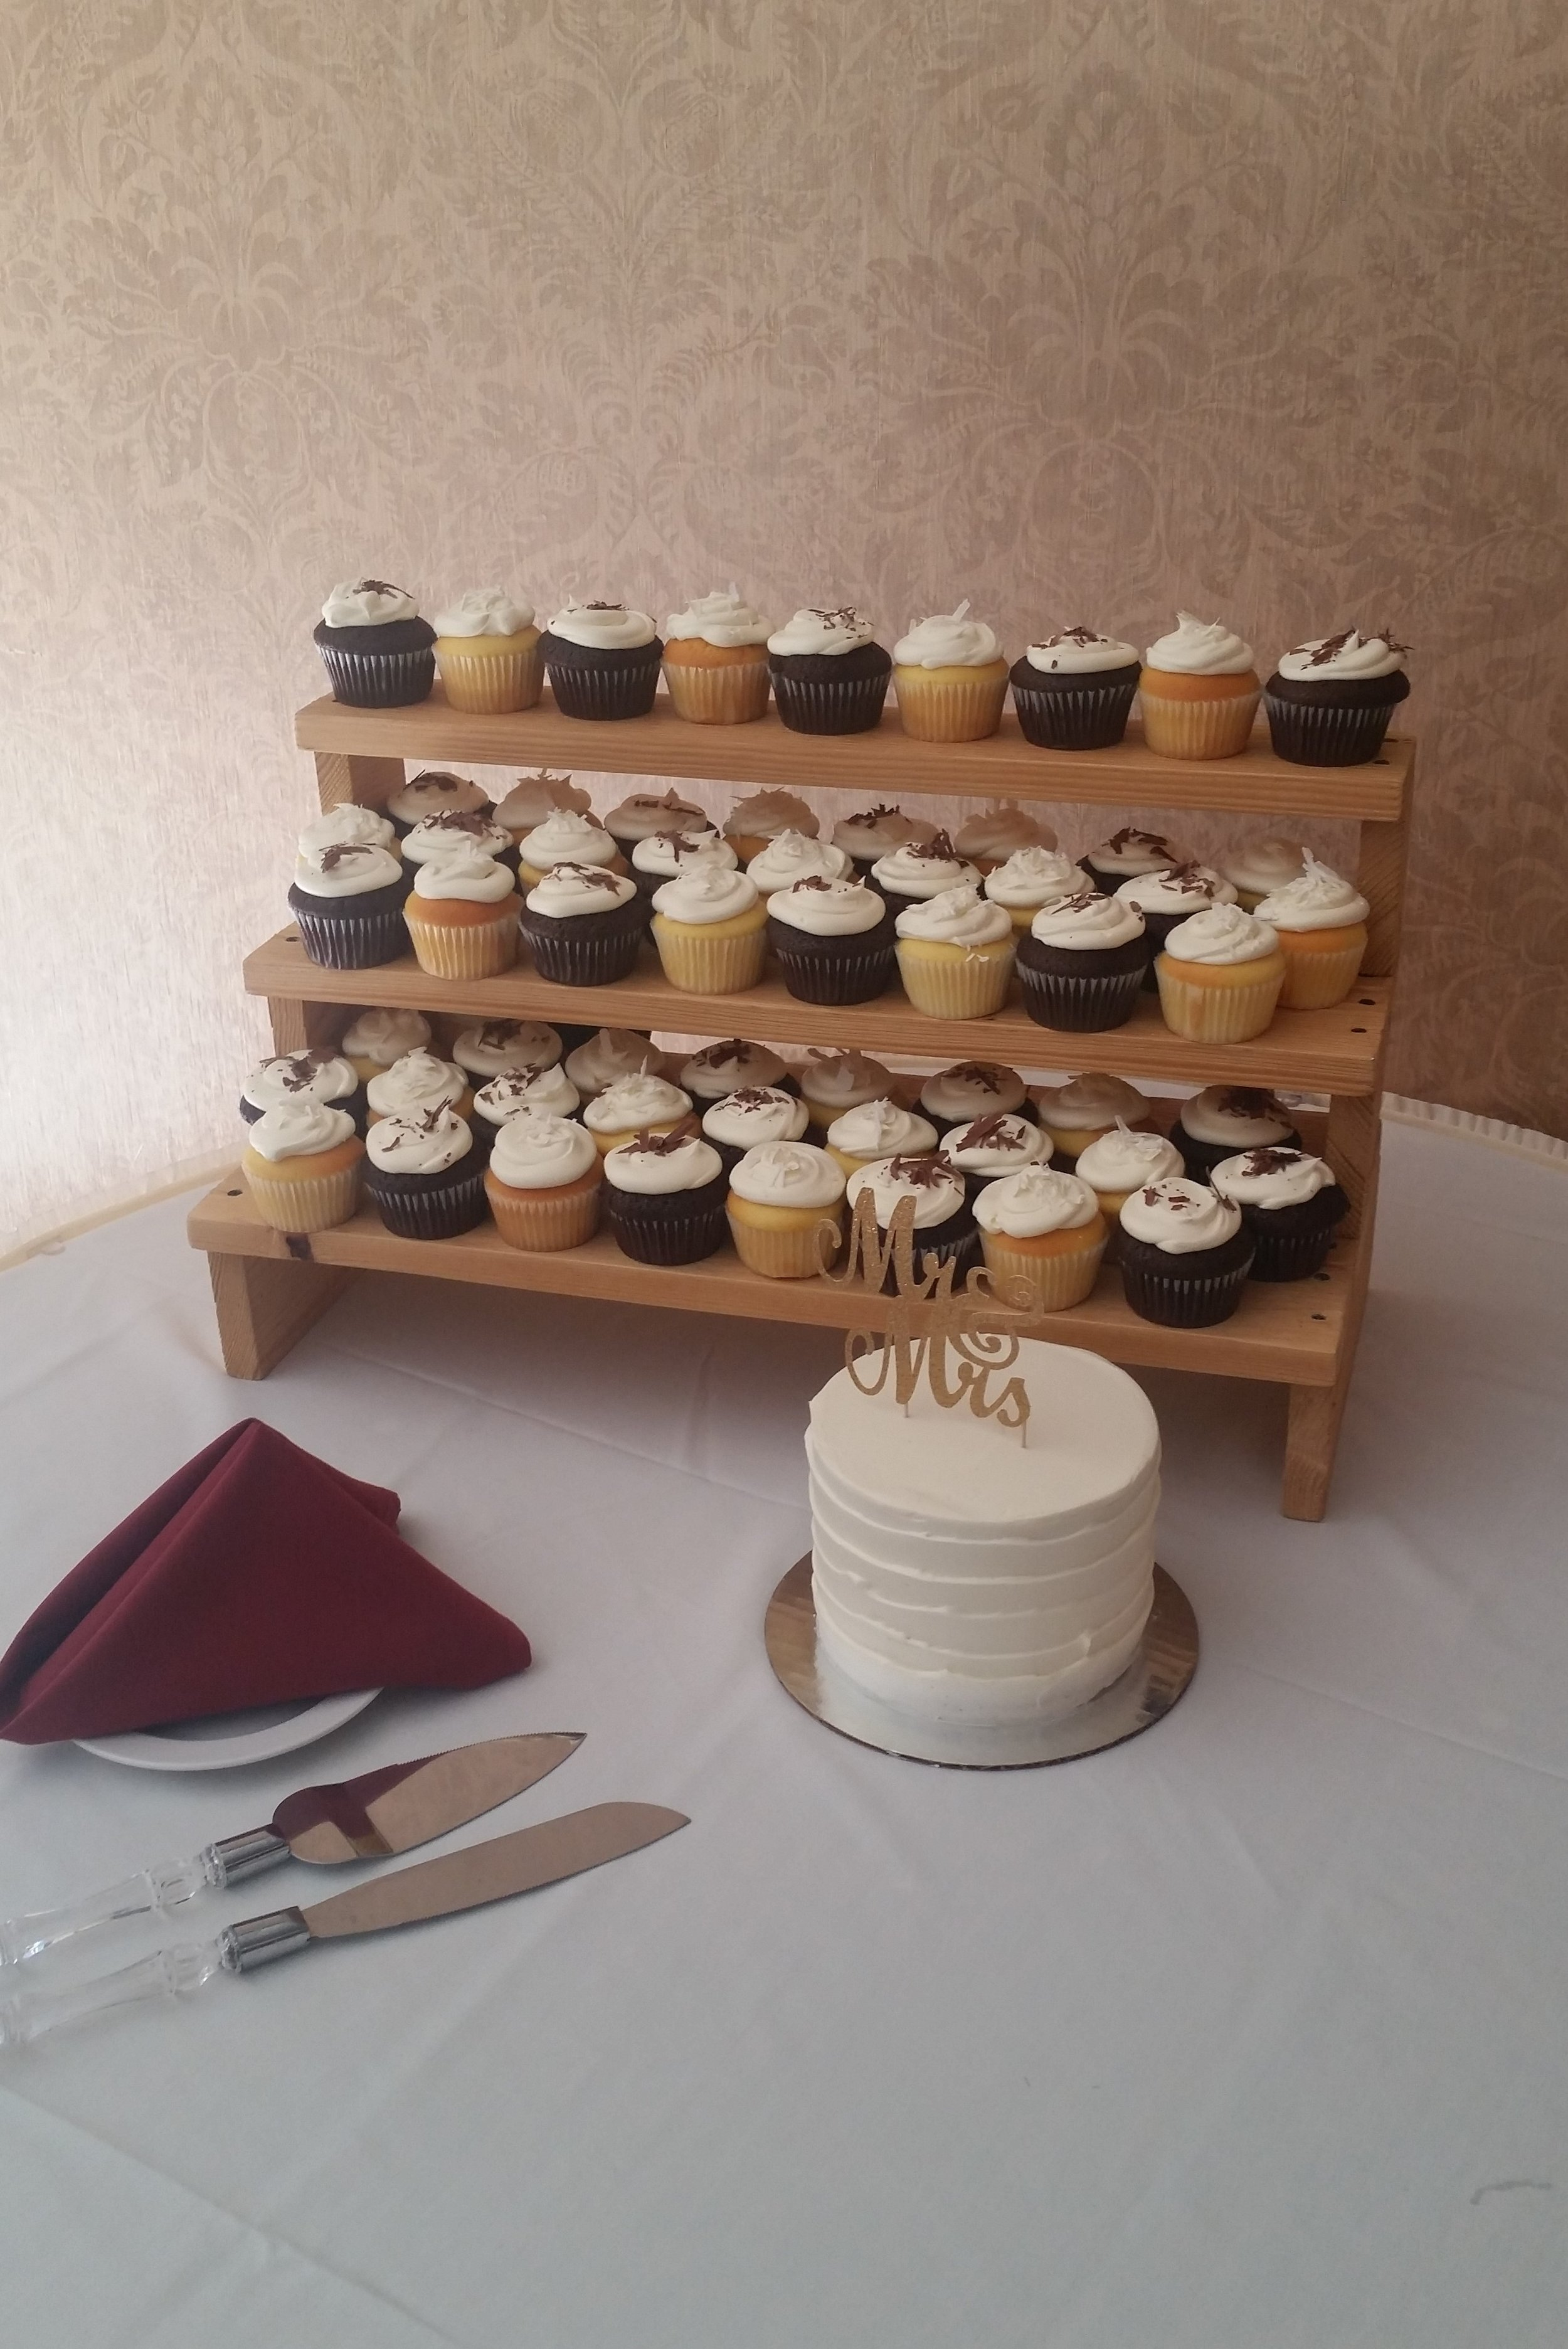 Cupcakes on a step stand